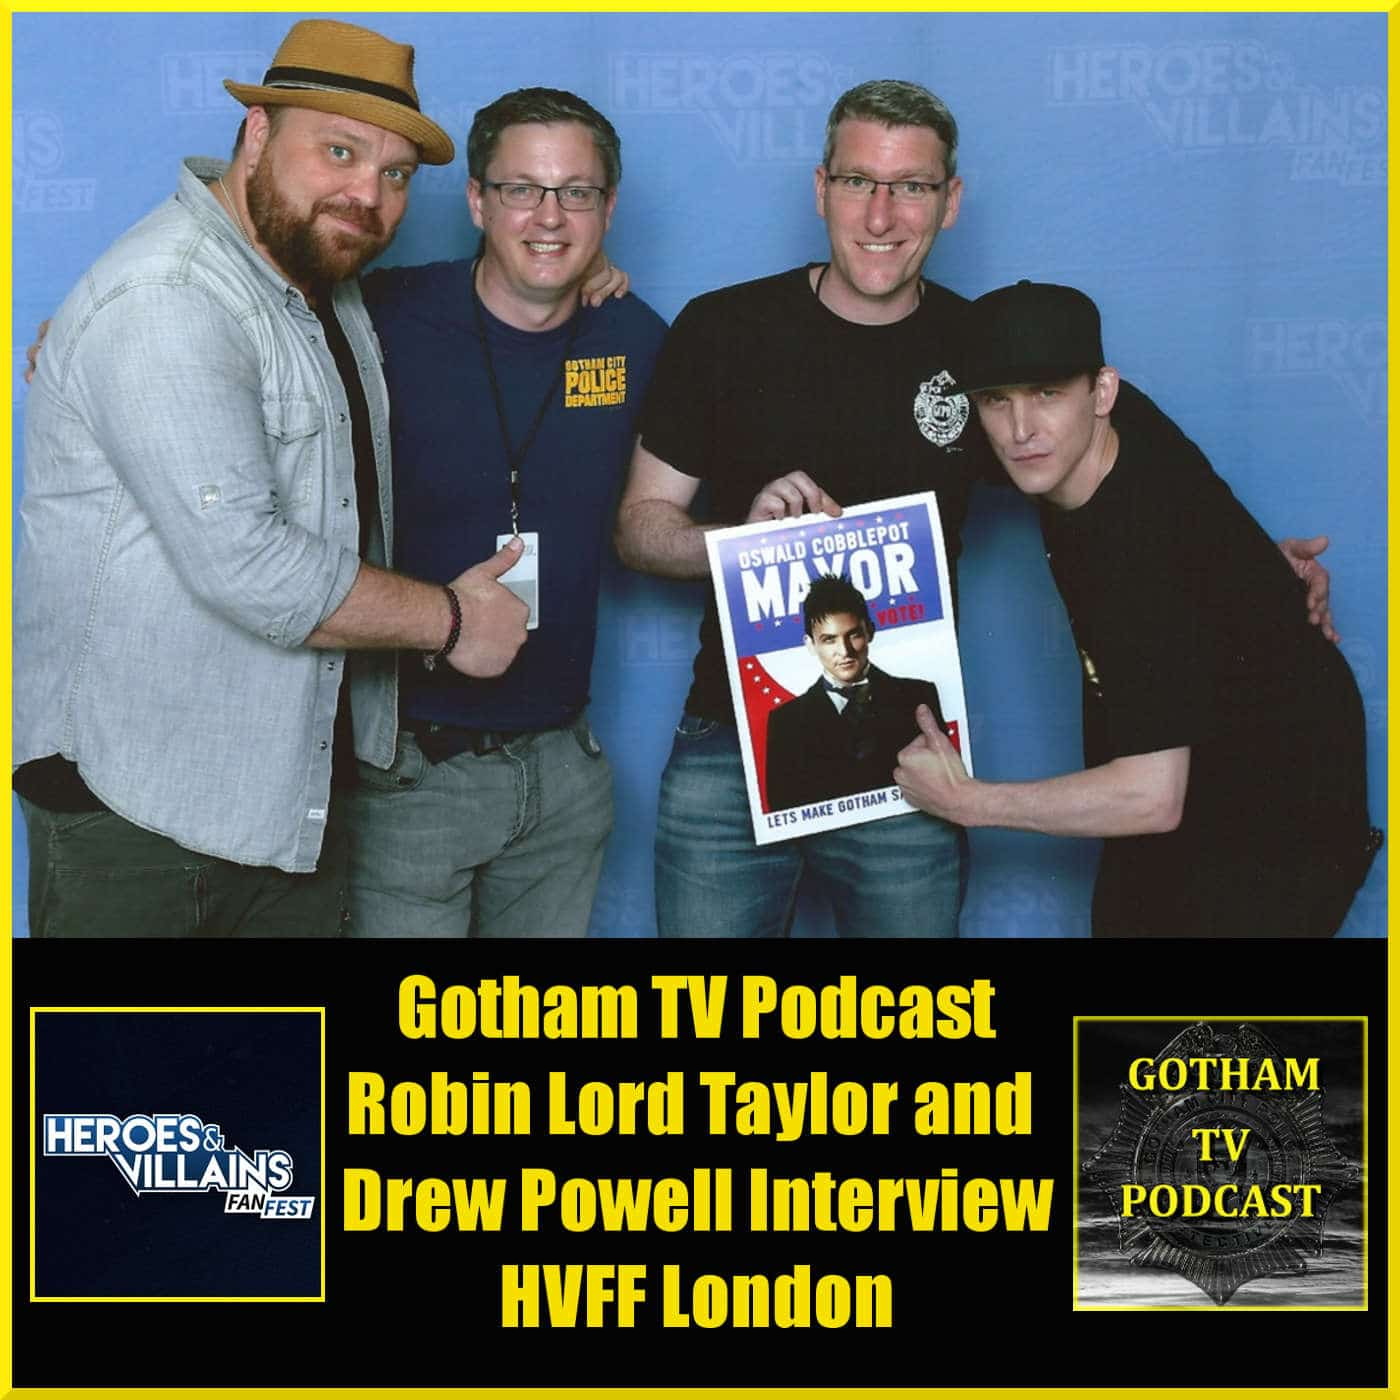 Our interview with Robin Lord Taylor and Drew Powell of Gotham